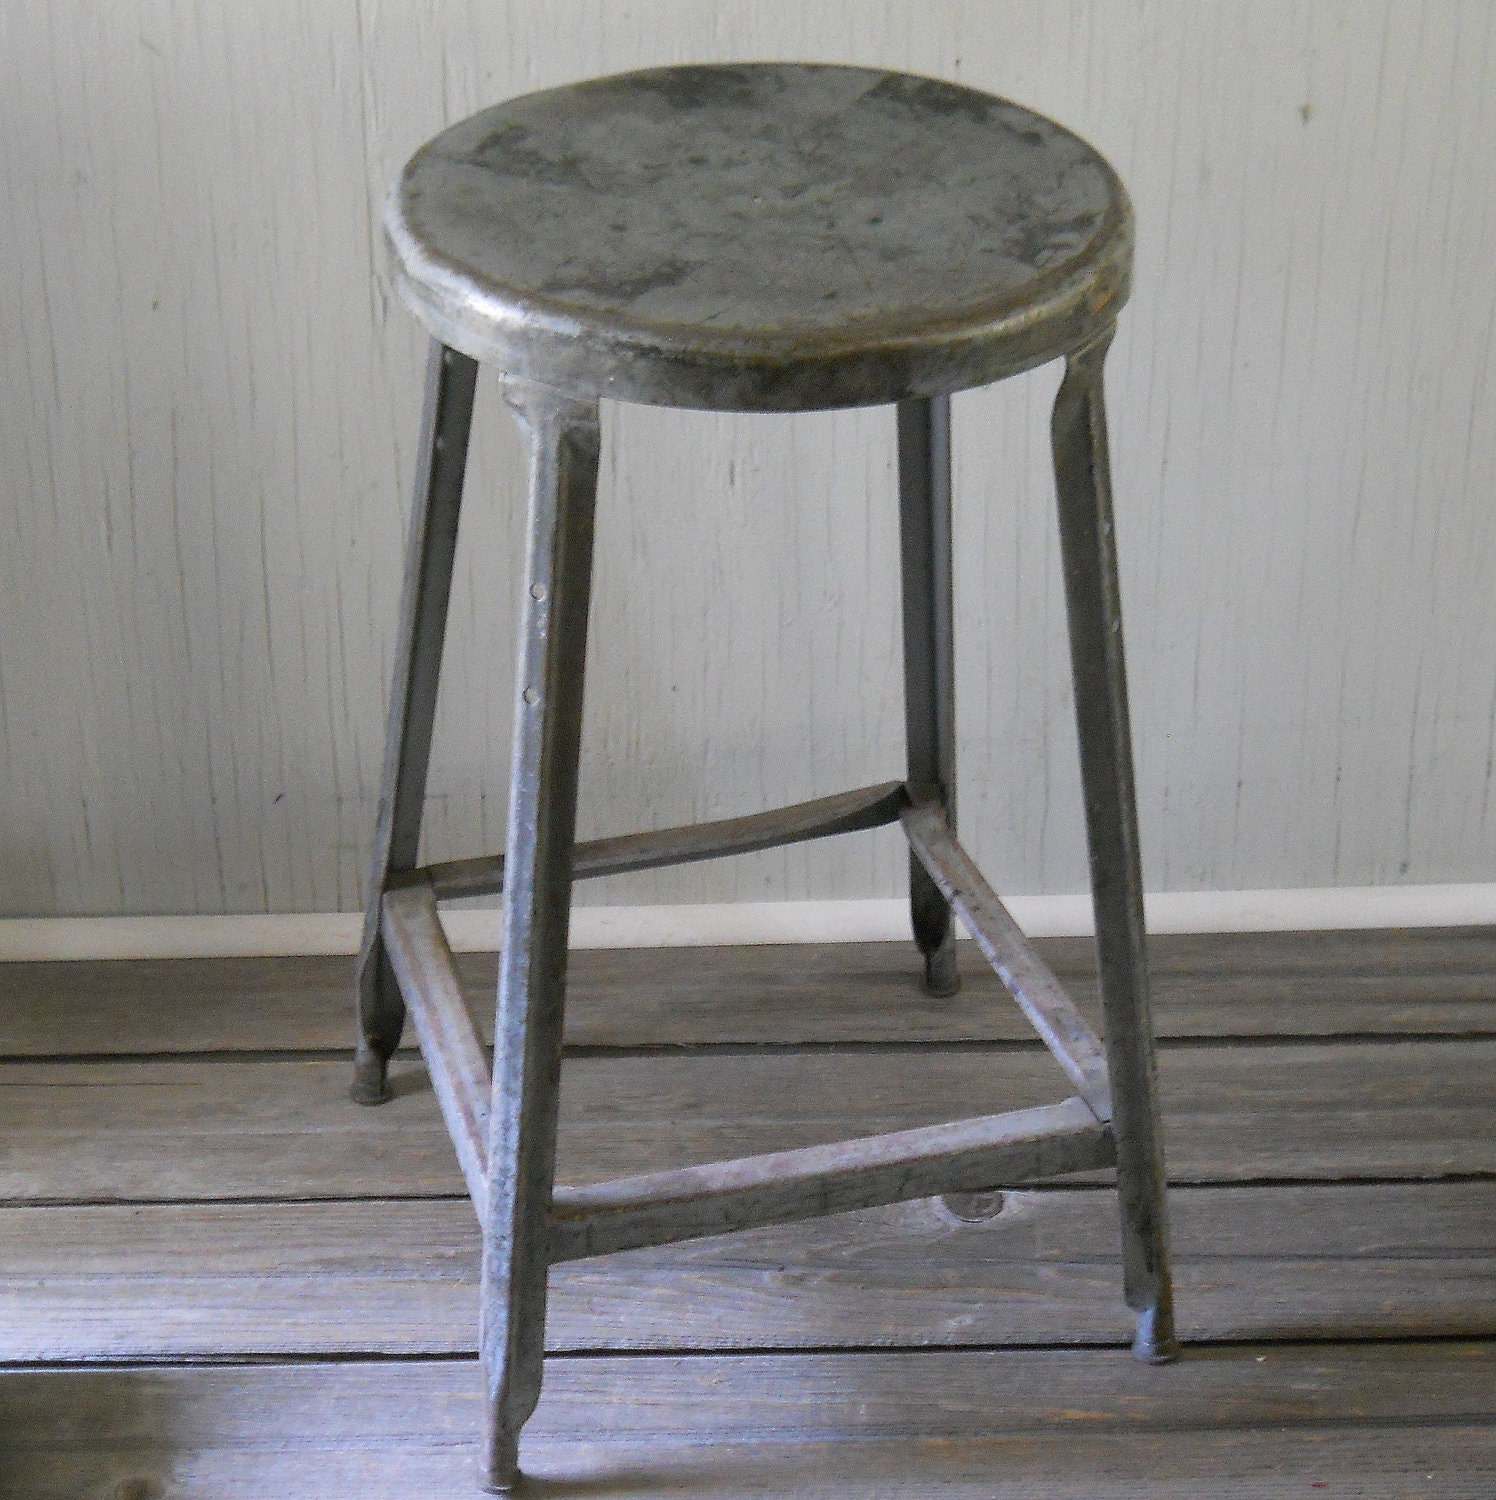 Vintage Industrial Factory Metal Stool